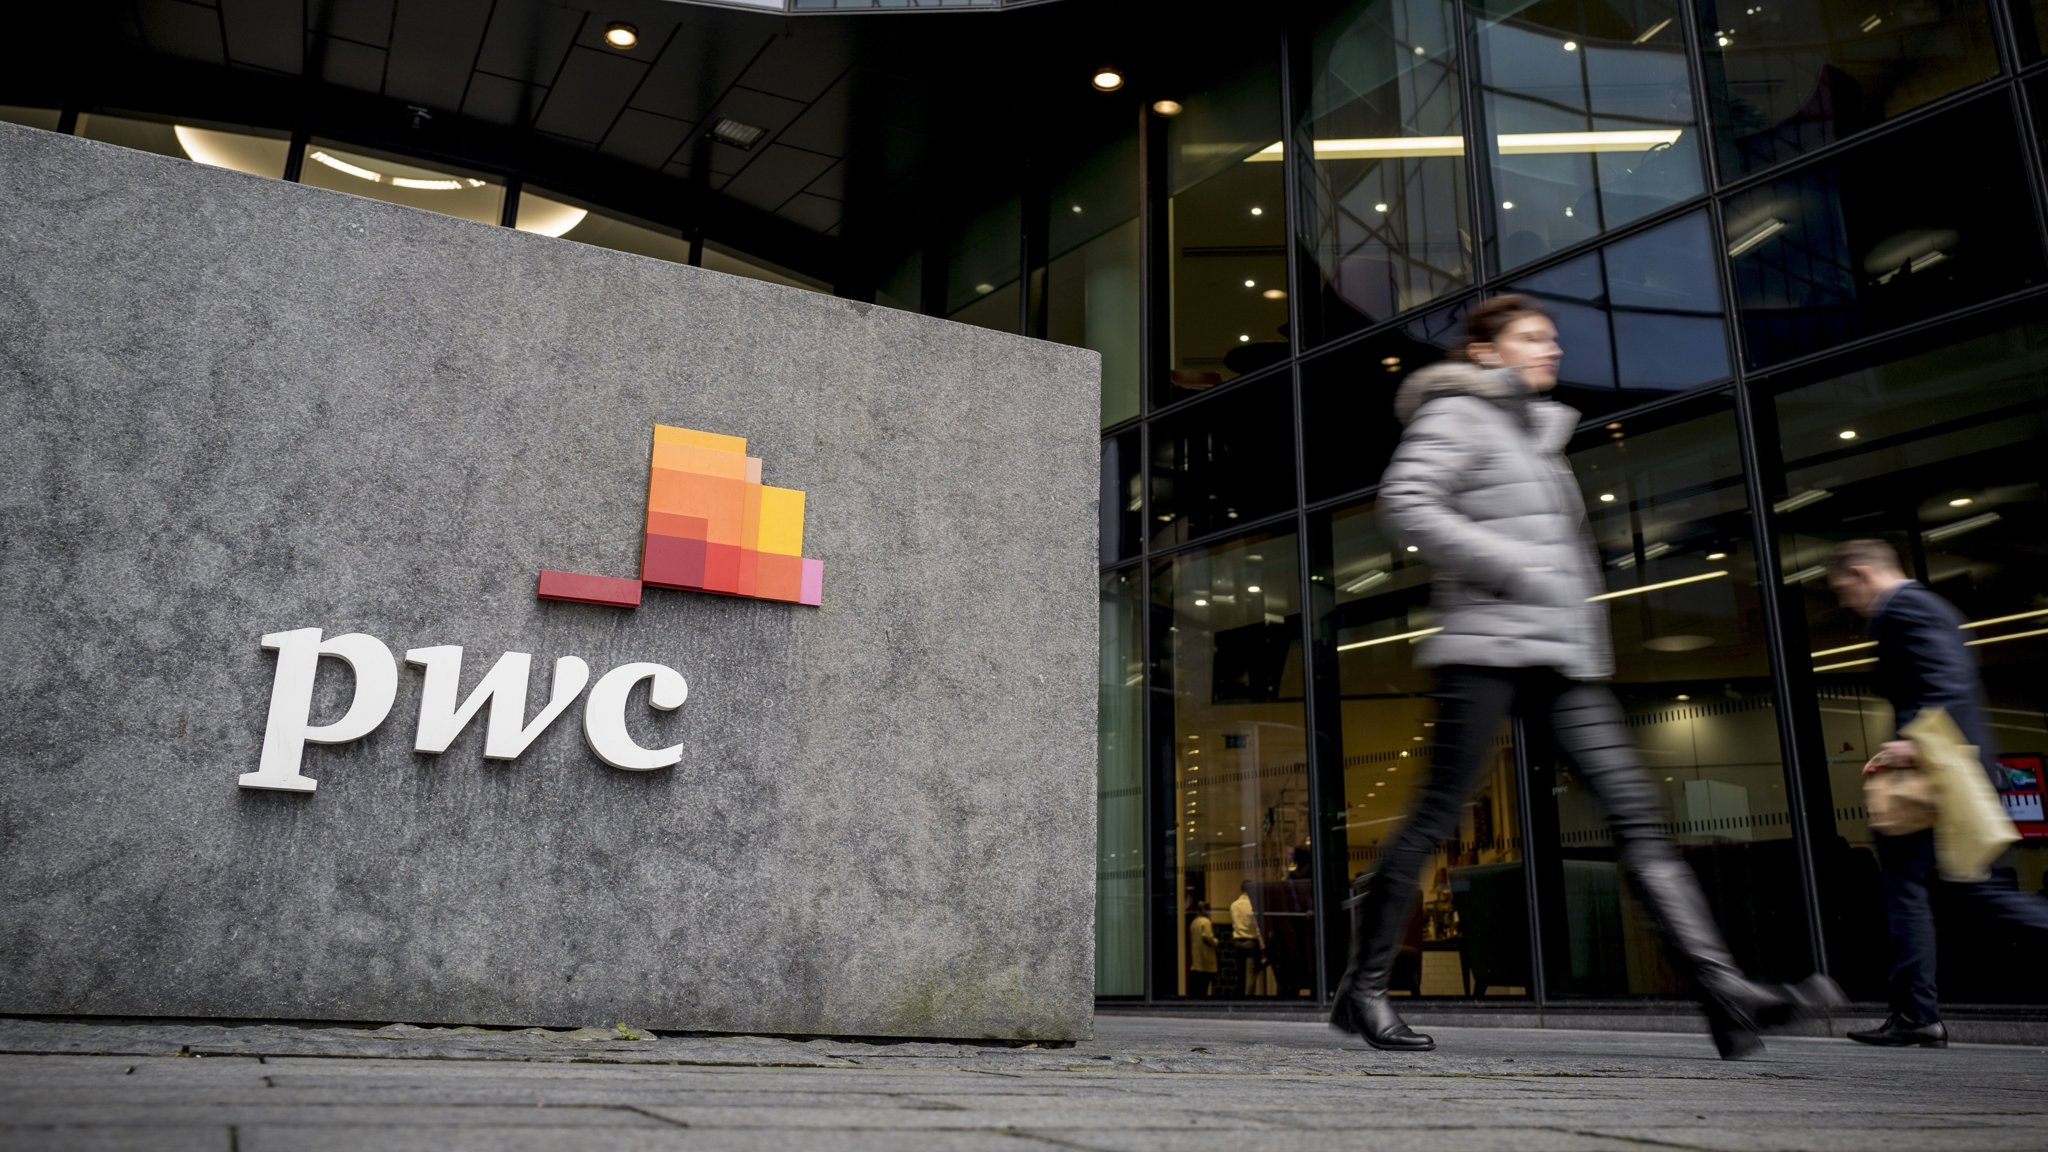 PwC says nearly 40% of new UK partners are women | Financial